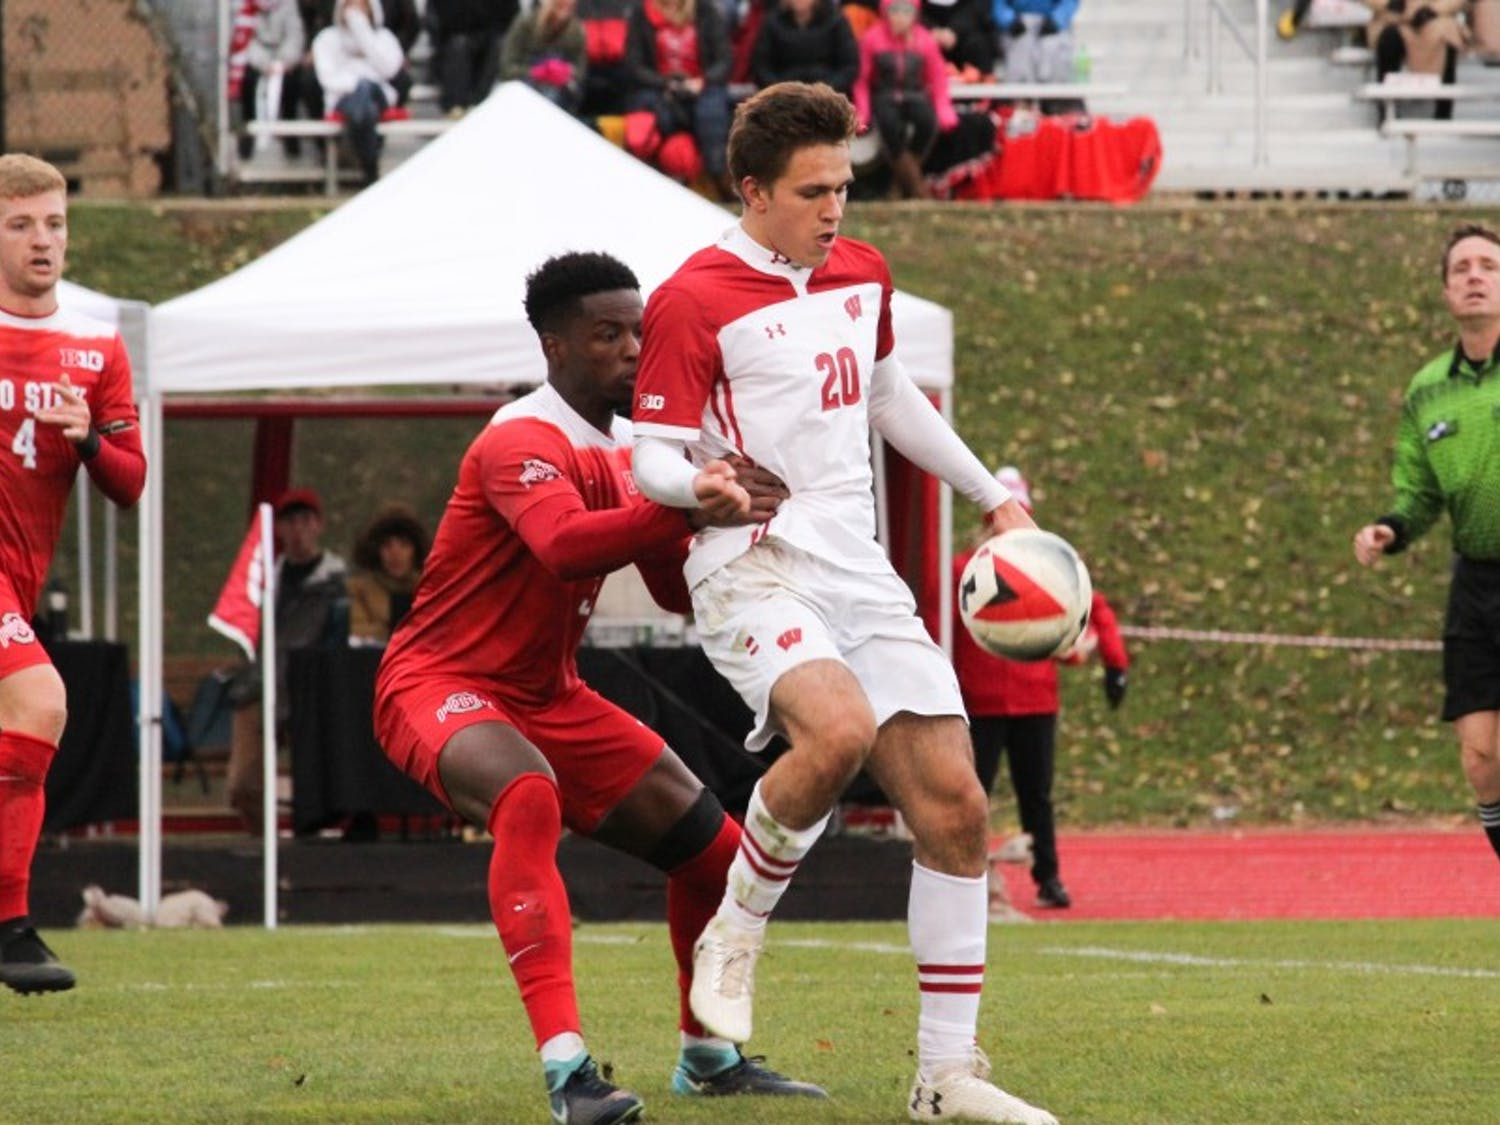 Freshman forward Noah Melick scored twice in the Badgers' 6-3 win over Rutgers as they advanced to the Big Ten Tournament semifinals.